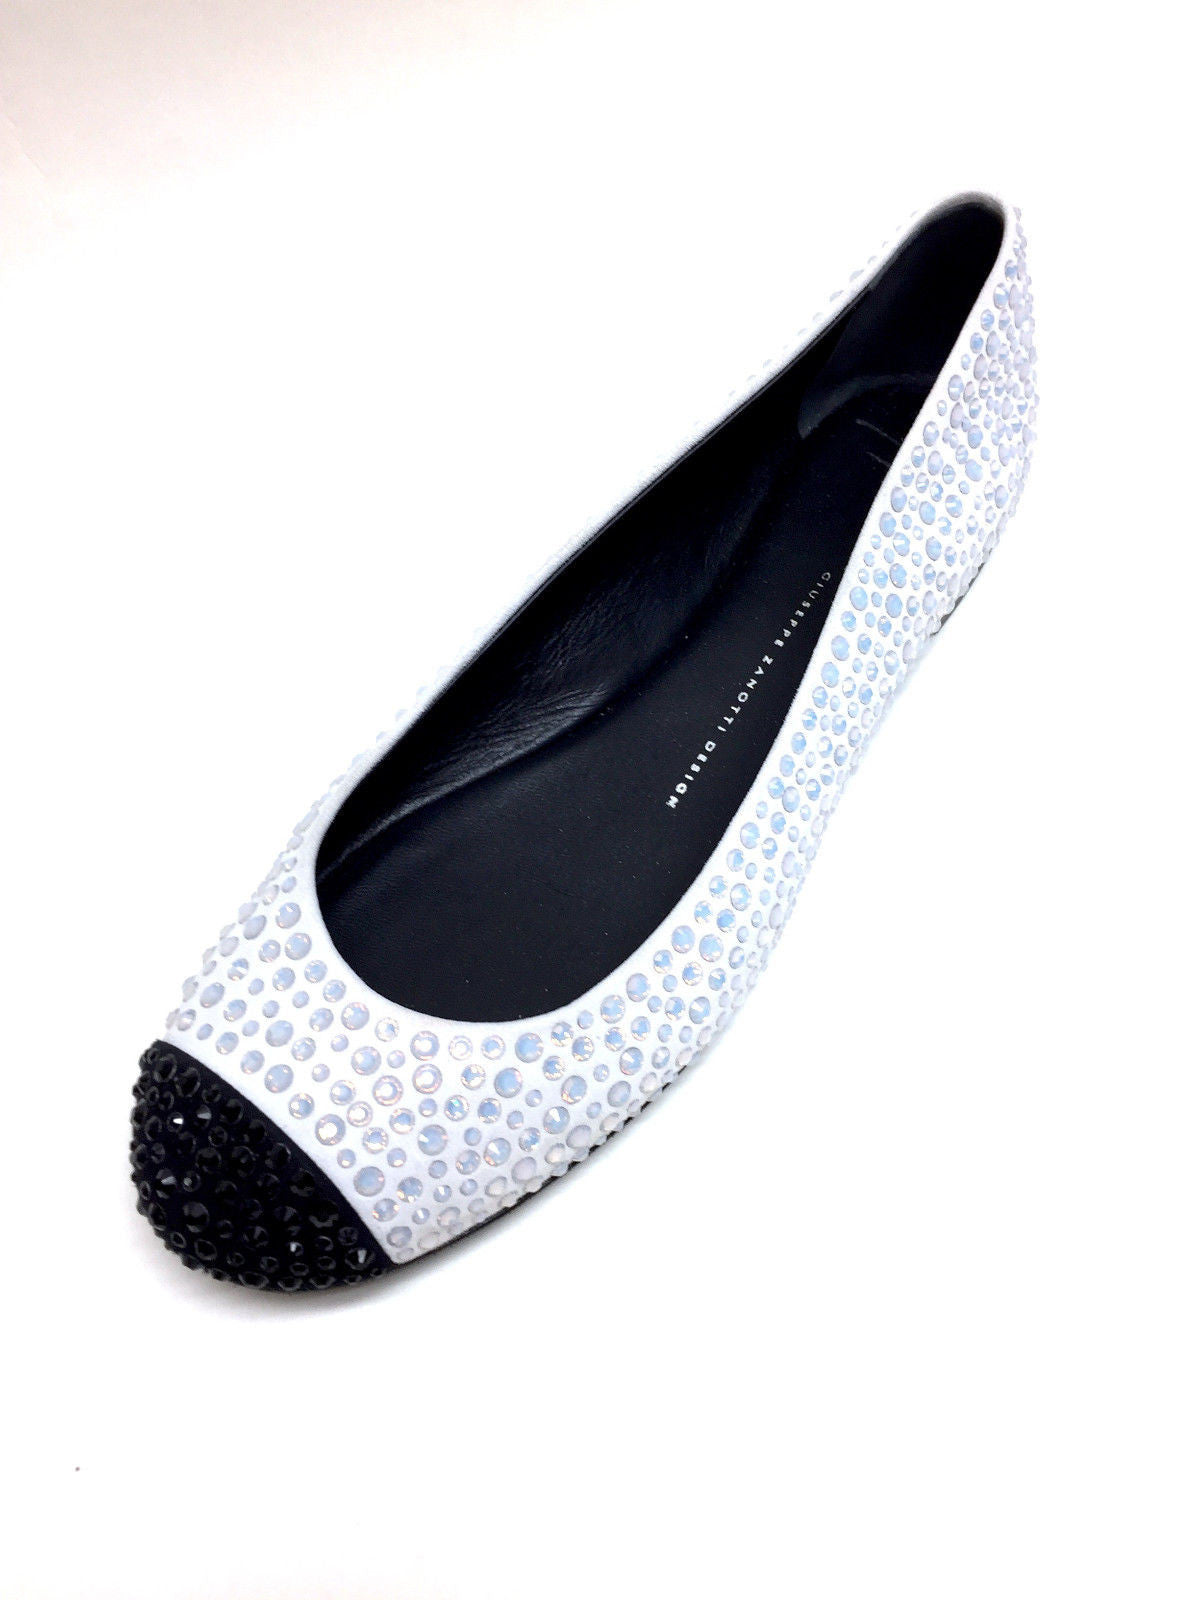 Giuseppe Zanotti Suede Ballet Flats Buy Cheap Factory Outlet High Quality Sale Best Store To Get Wholesale Price For Sale 0pCYf2UFf